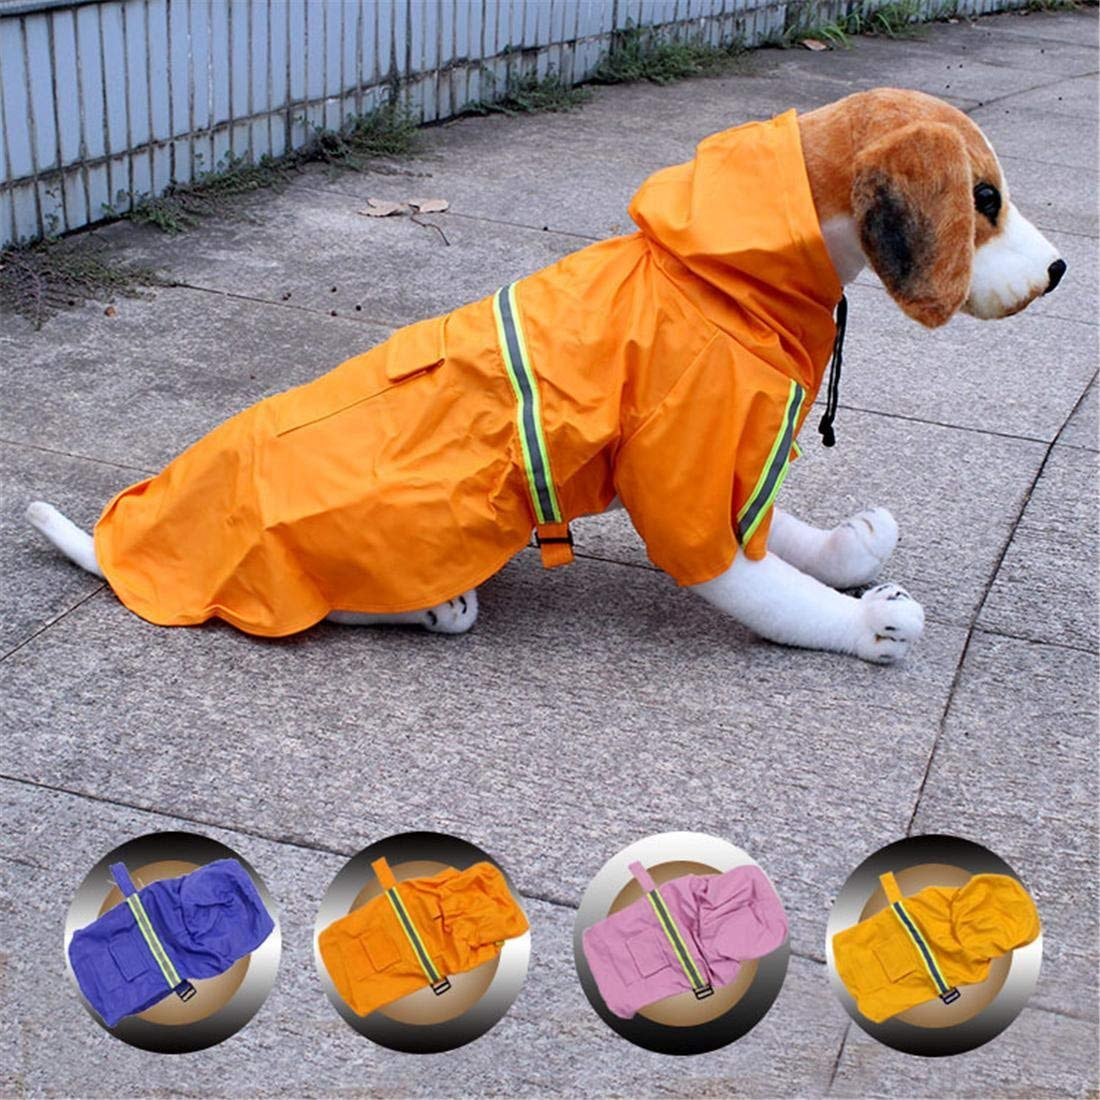 Pet Bed Pet Dog Raincoat Hooded Rain Cover Jacket For Small Medium Large Dog Puppy Summer Winter Rainy Snowy Day Slicker Rainwear Clothes 4 Colors, Blue, 5XL ( Color : Yellow , Size : 5XL ) by Kwekjren29921